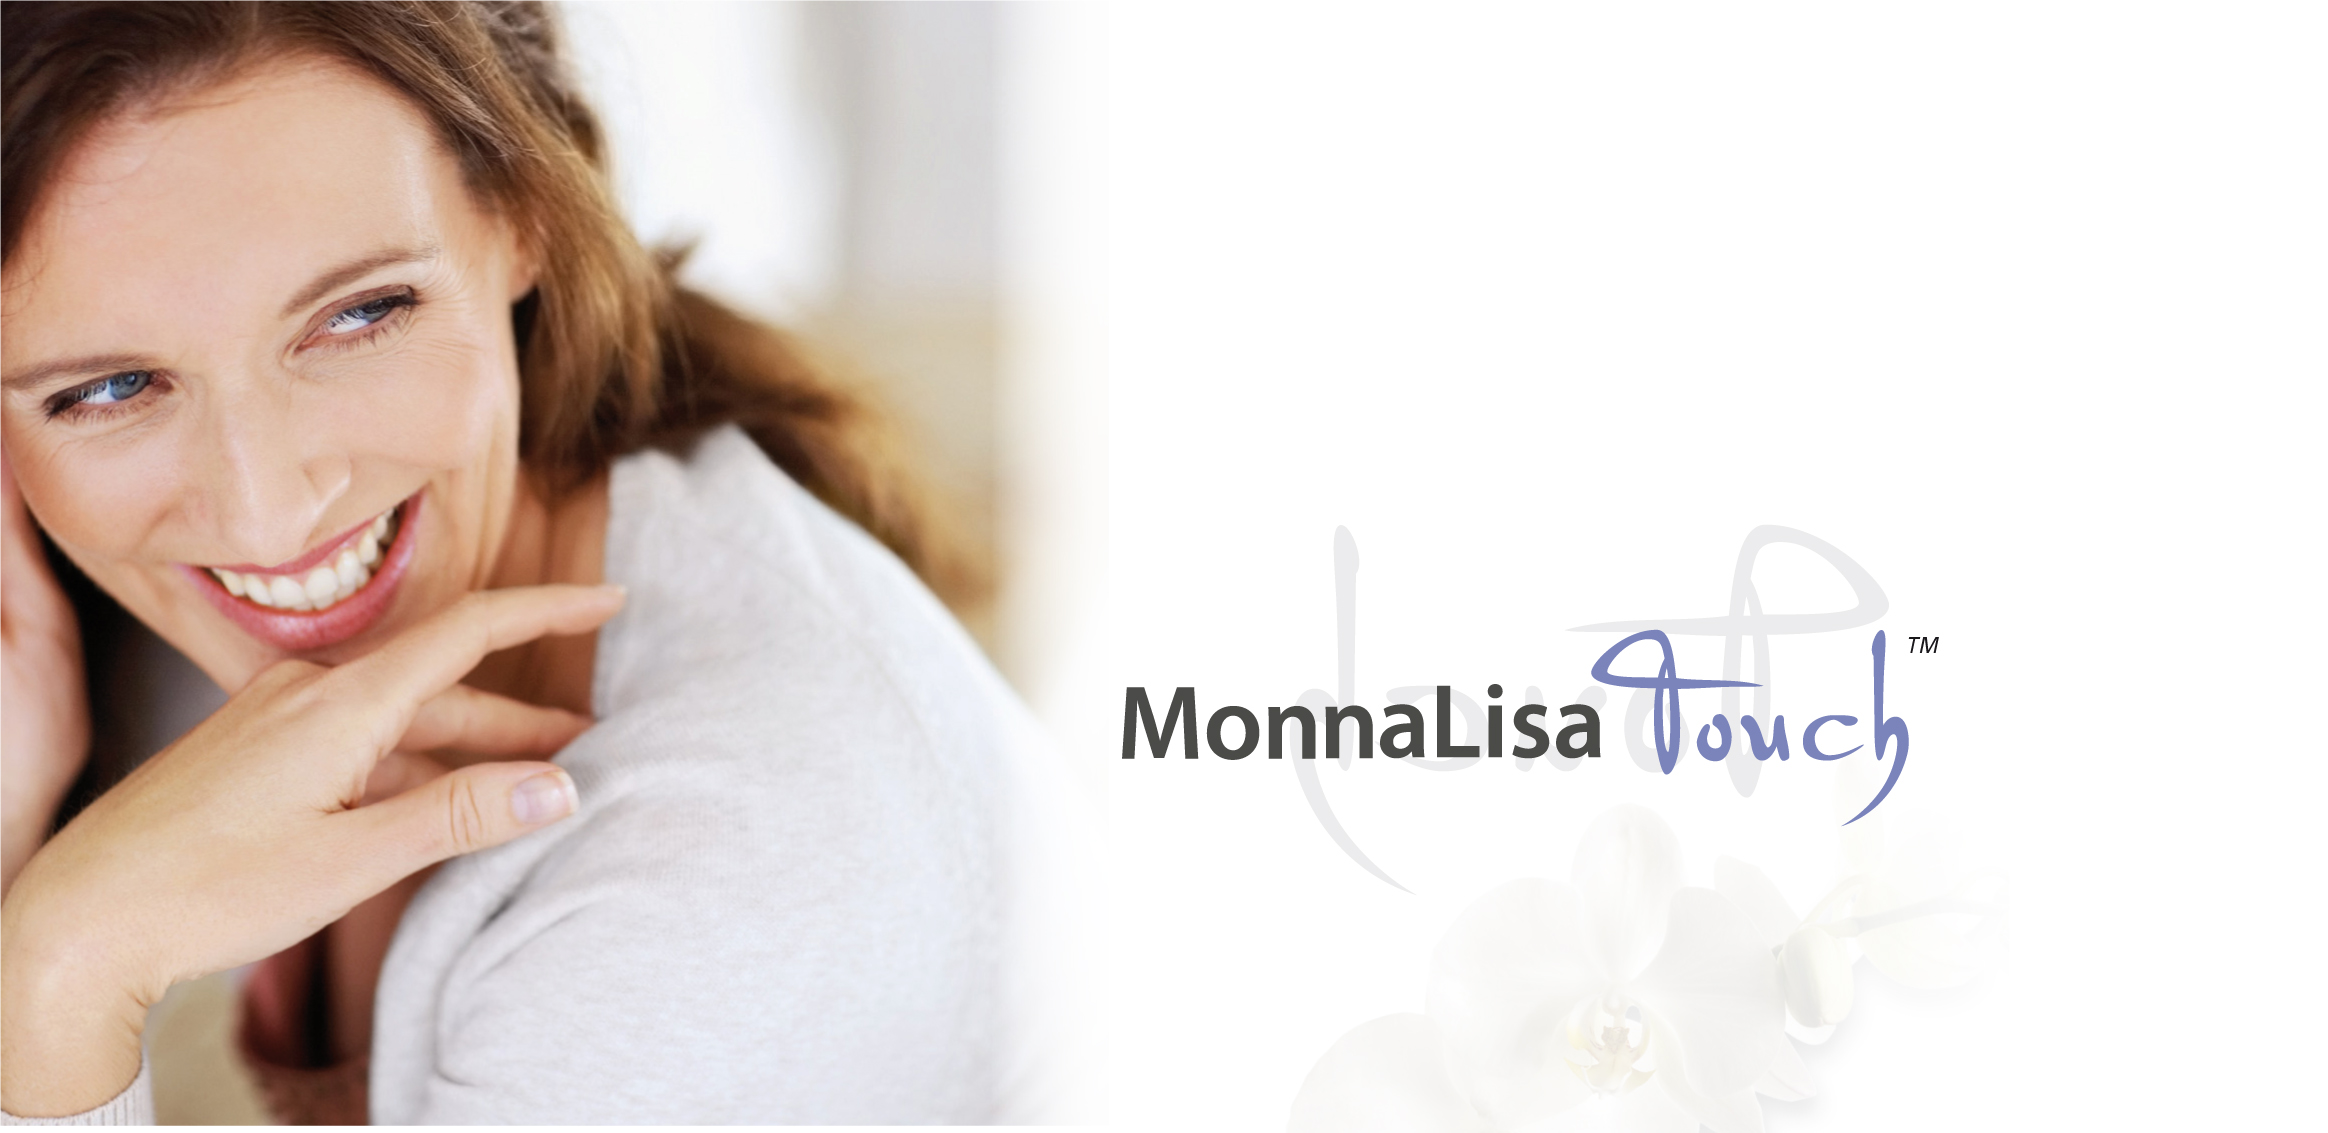 Monnalisa Touch - Terapia Laser